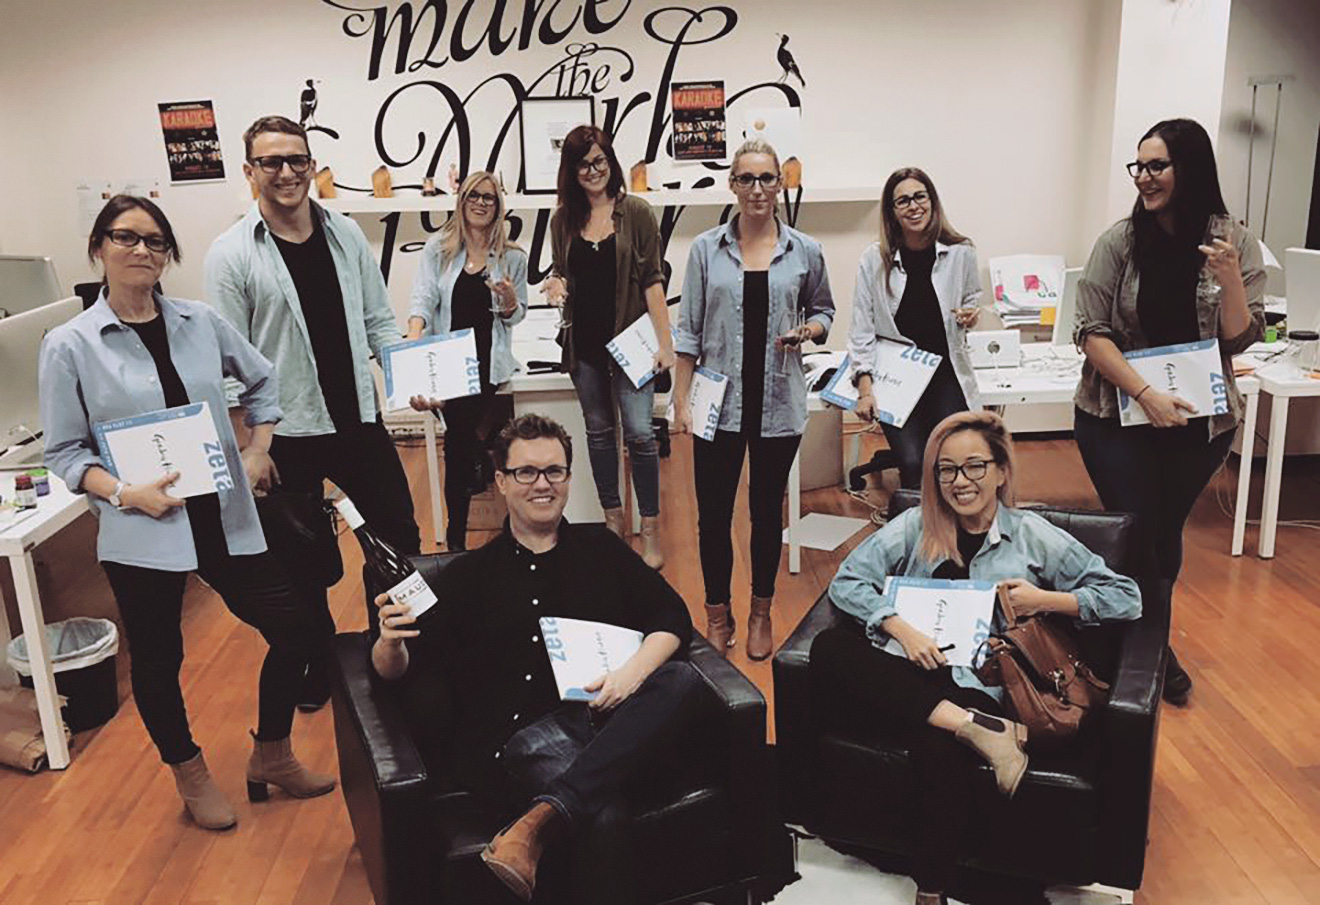 The day when we all dressed up as our Creative Director 😂😂😂